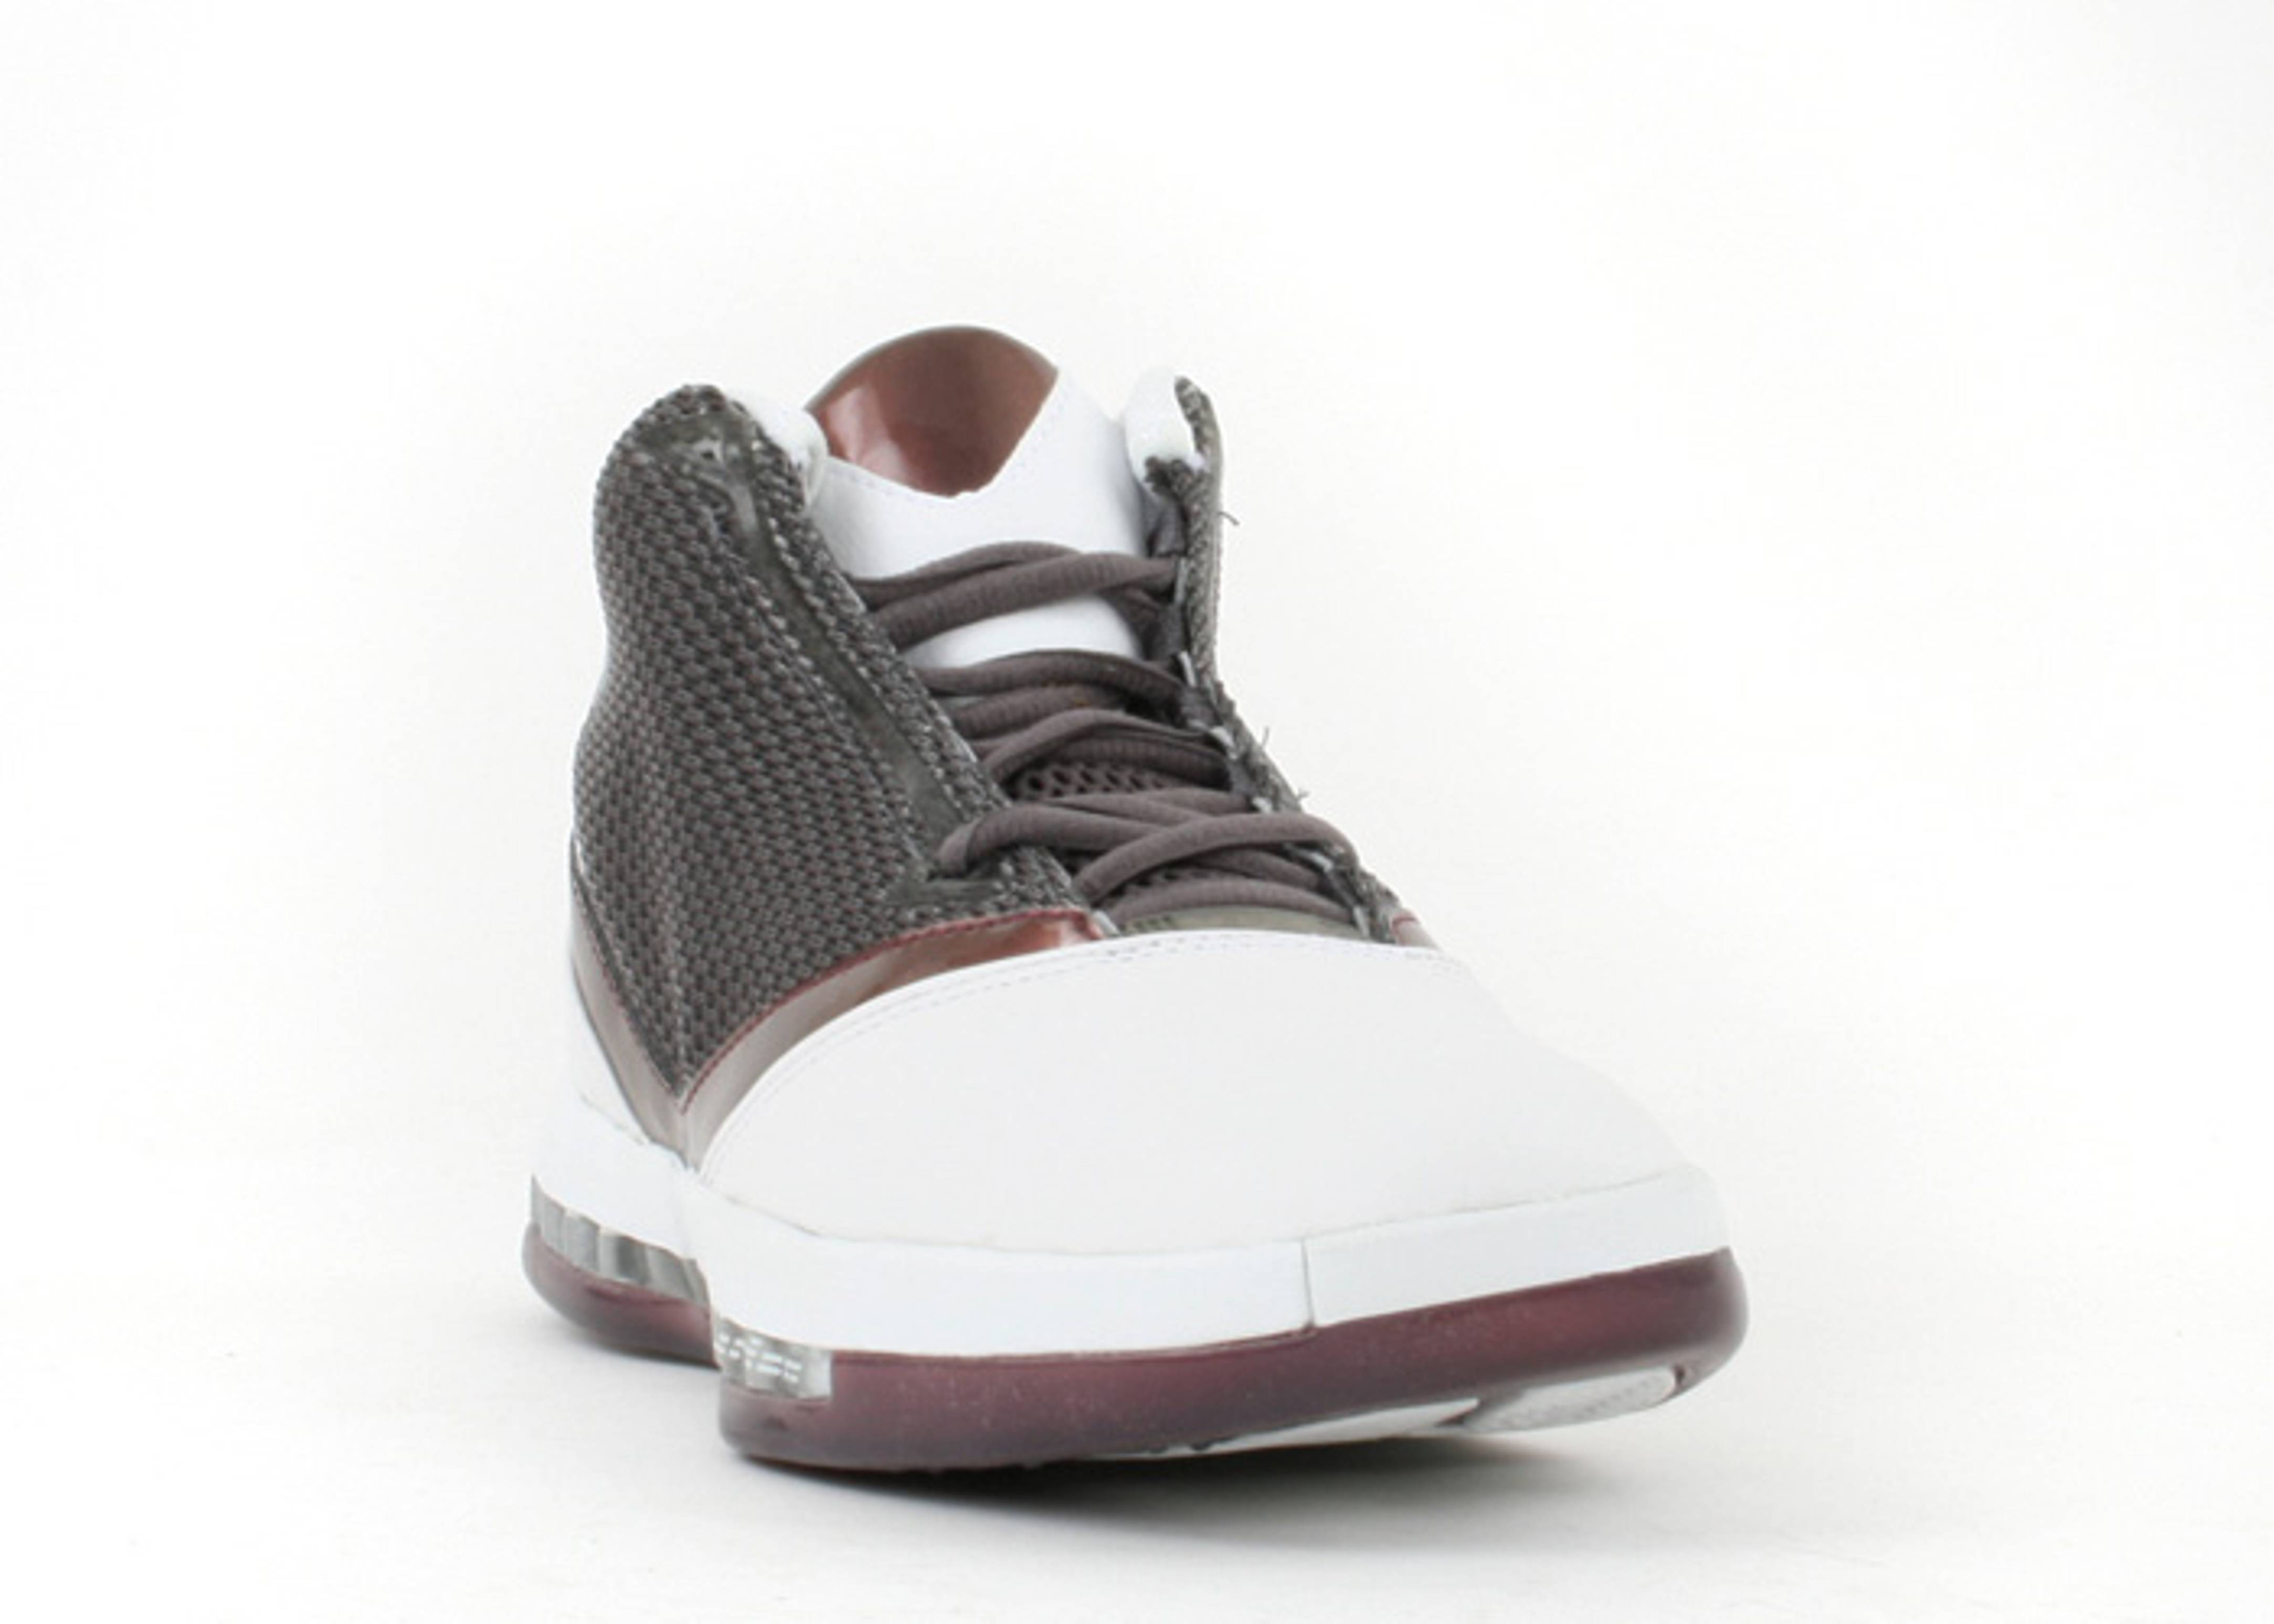 d7271cfc93c7 Air Jordan 16 + Q M - Air Jordan - 136080 020 - whisper cherrywood-light  graphite